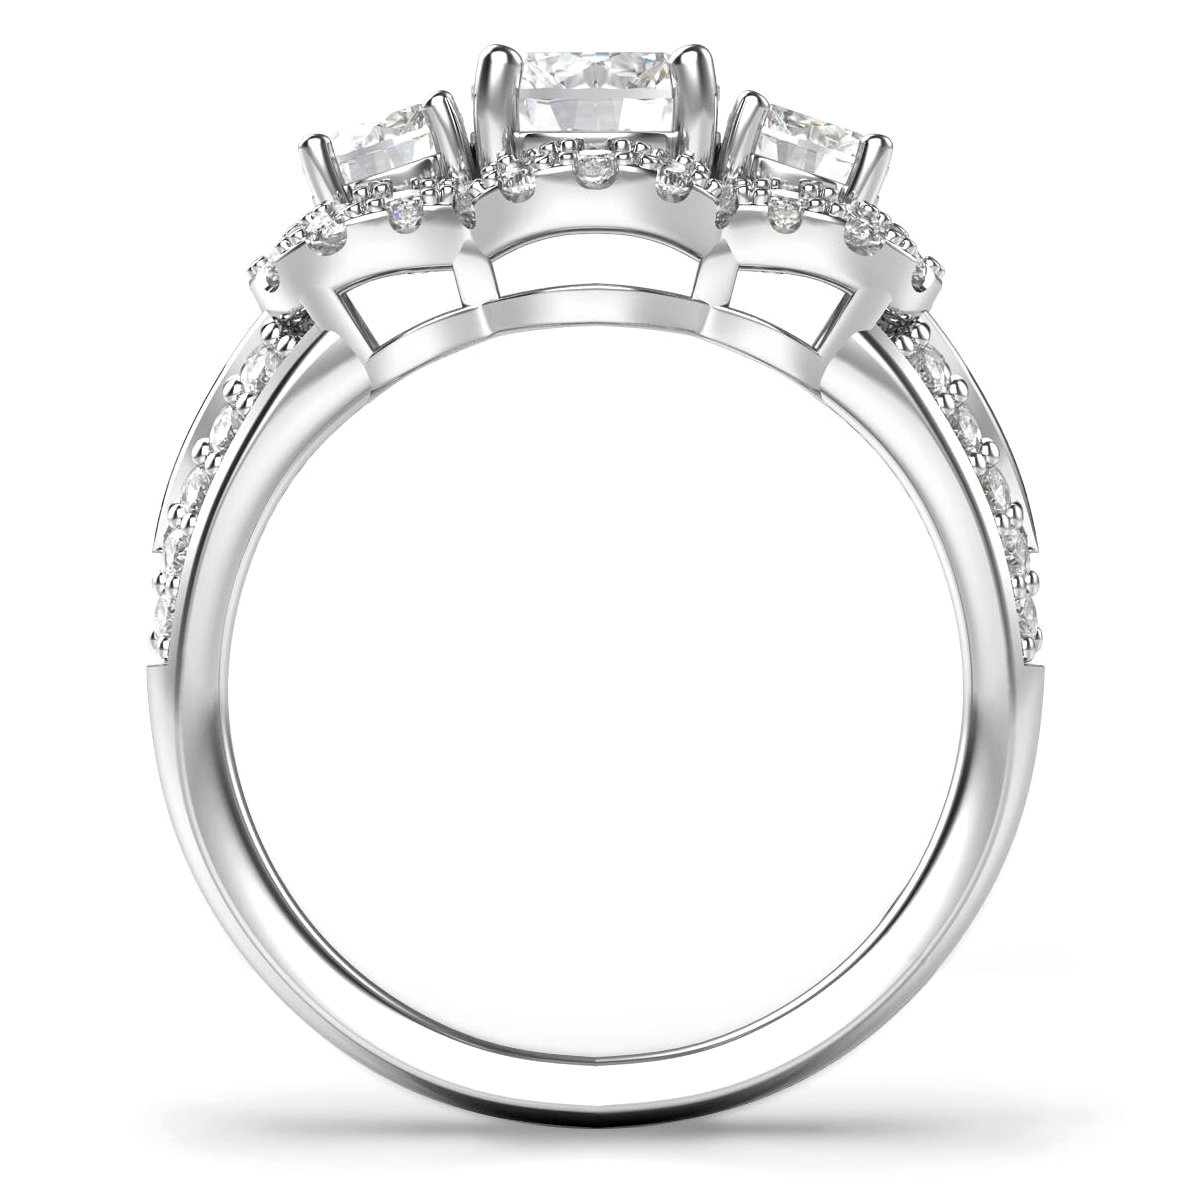 Sterling Silver 925 3 Stone CZ Cubic Zirconia Halo Engagement Ring